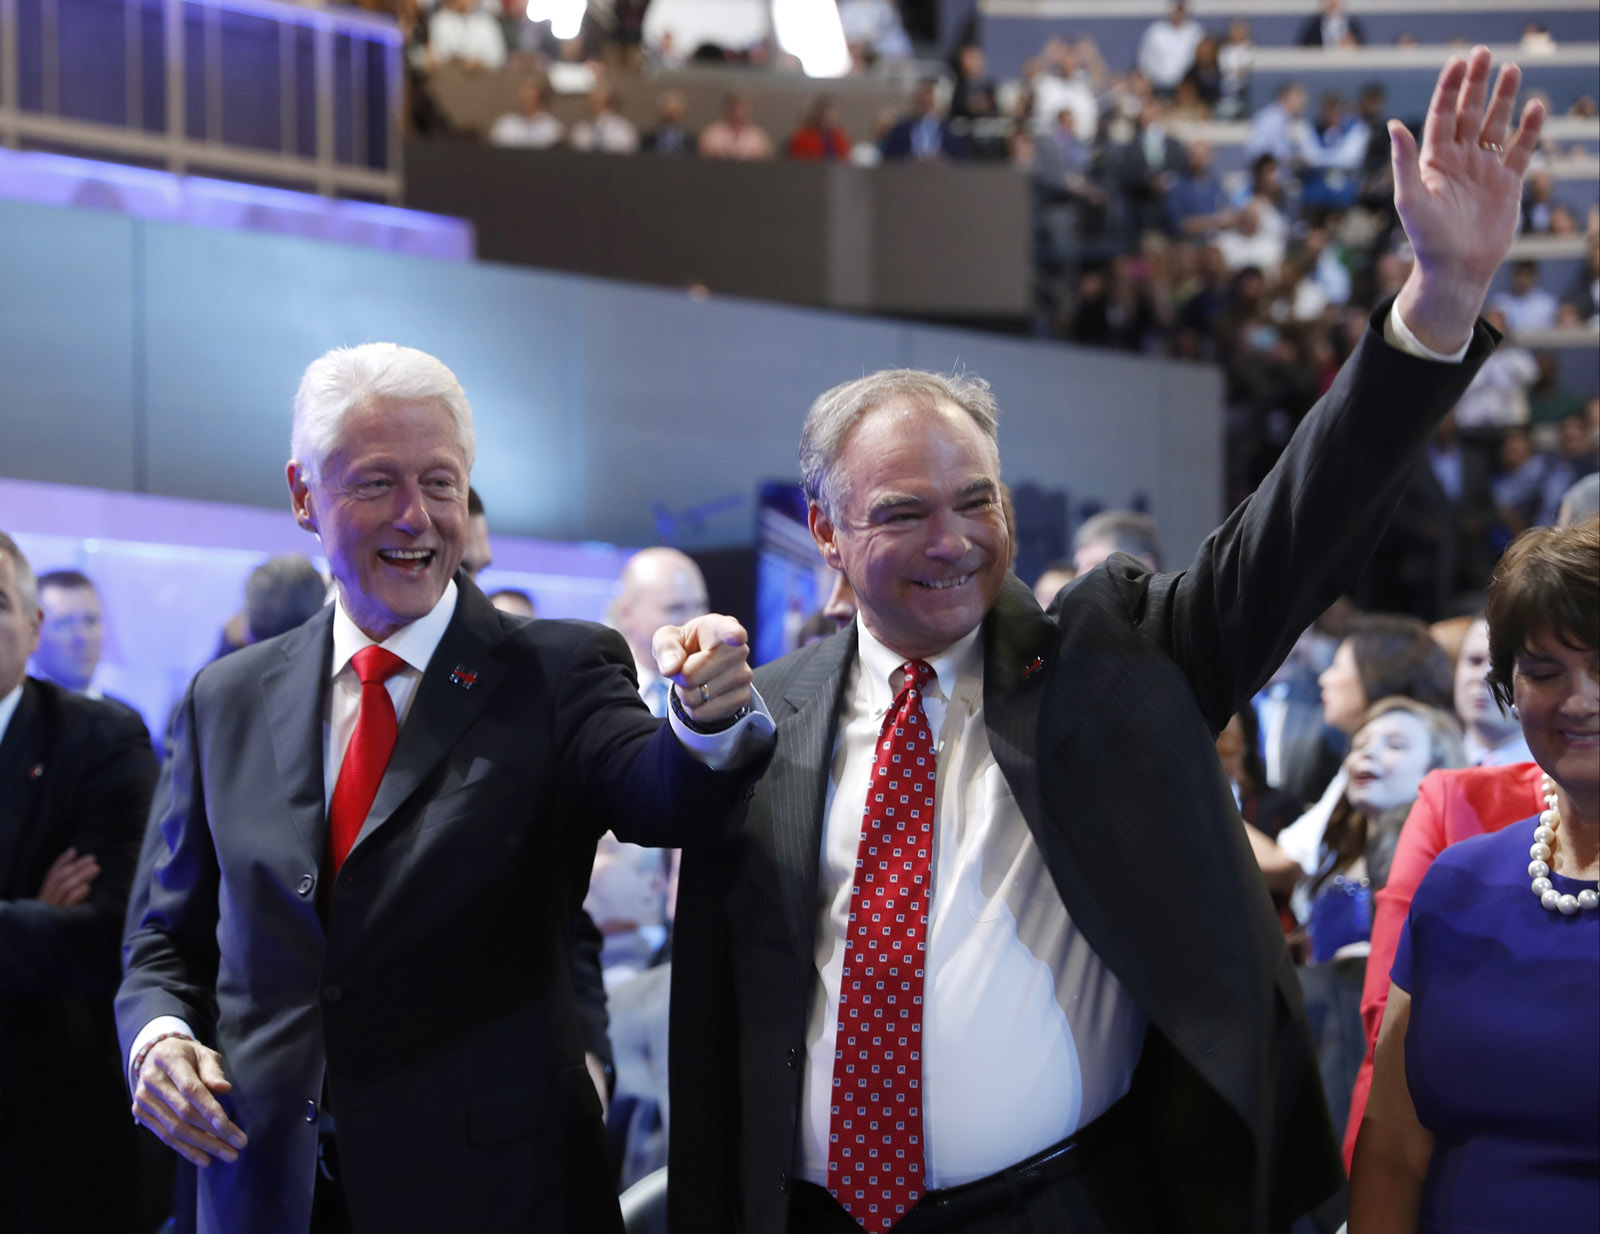 Former President Bill Clinton and Democratic vice presidential candidate, Sen. Tim Kaine, D-Va., arrive on the convention floor before Democratic presidential nominee Hillary Clinton speaks during the final day of the Democratic National Convention in Philadelphia, Thursday, July 28, 2016. (AP Photo/Carolyn Kaster)